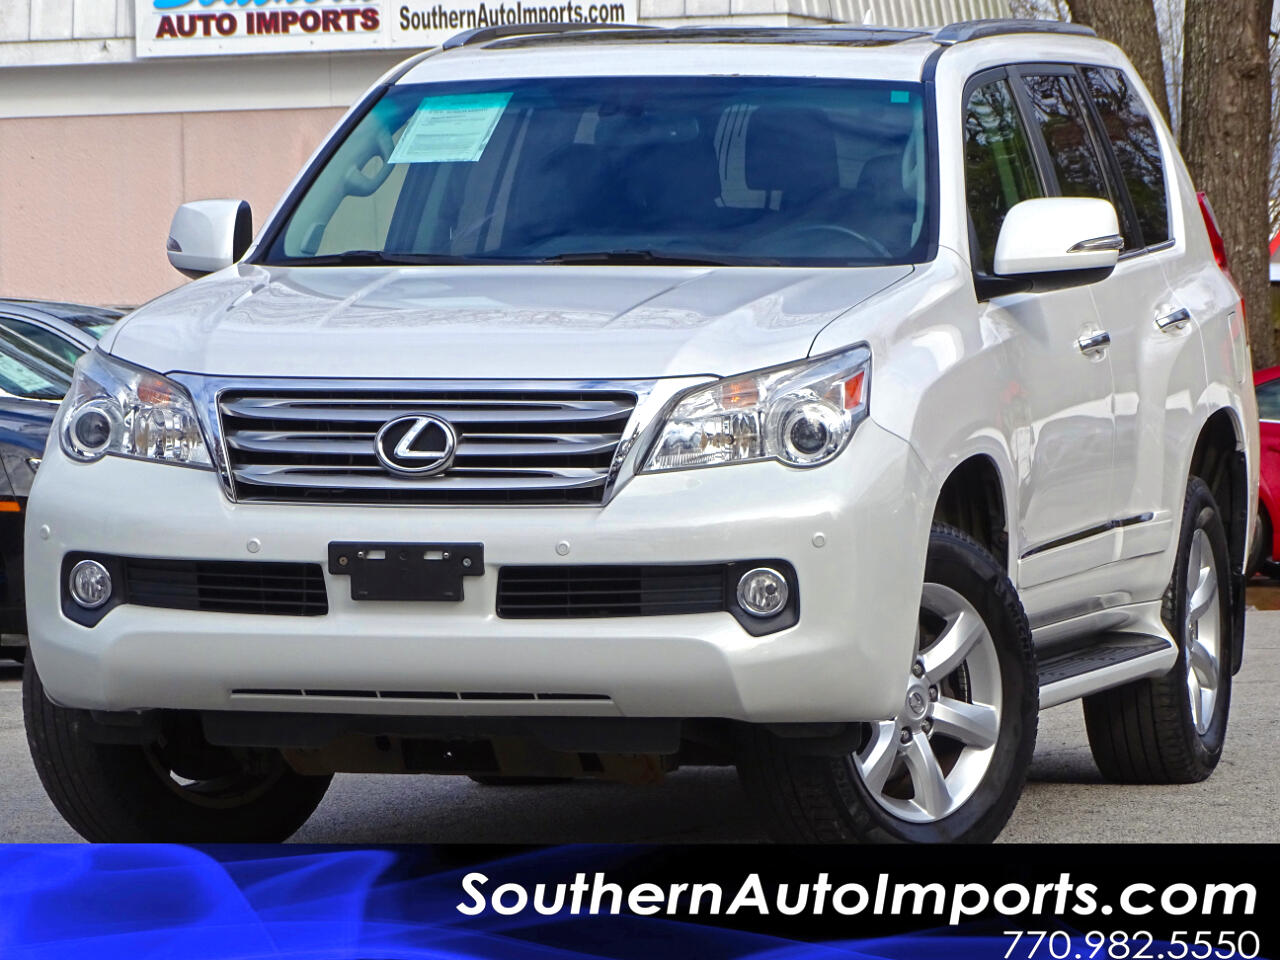 2013 Lexus GX 460 4WD w/Back up Camera Navigation 3rd Row Seats